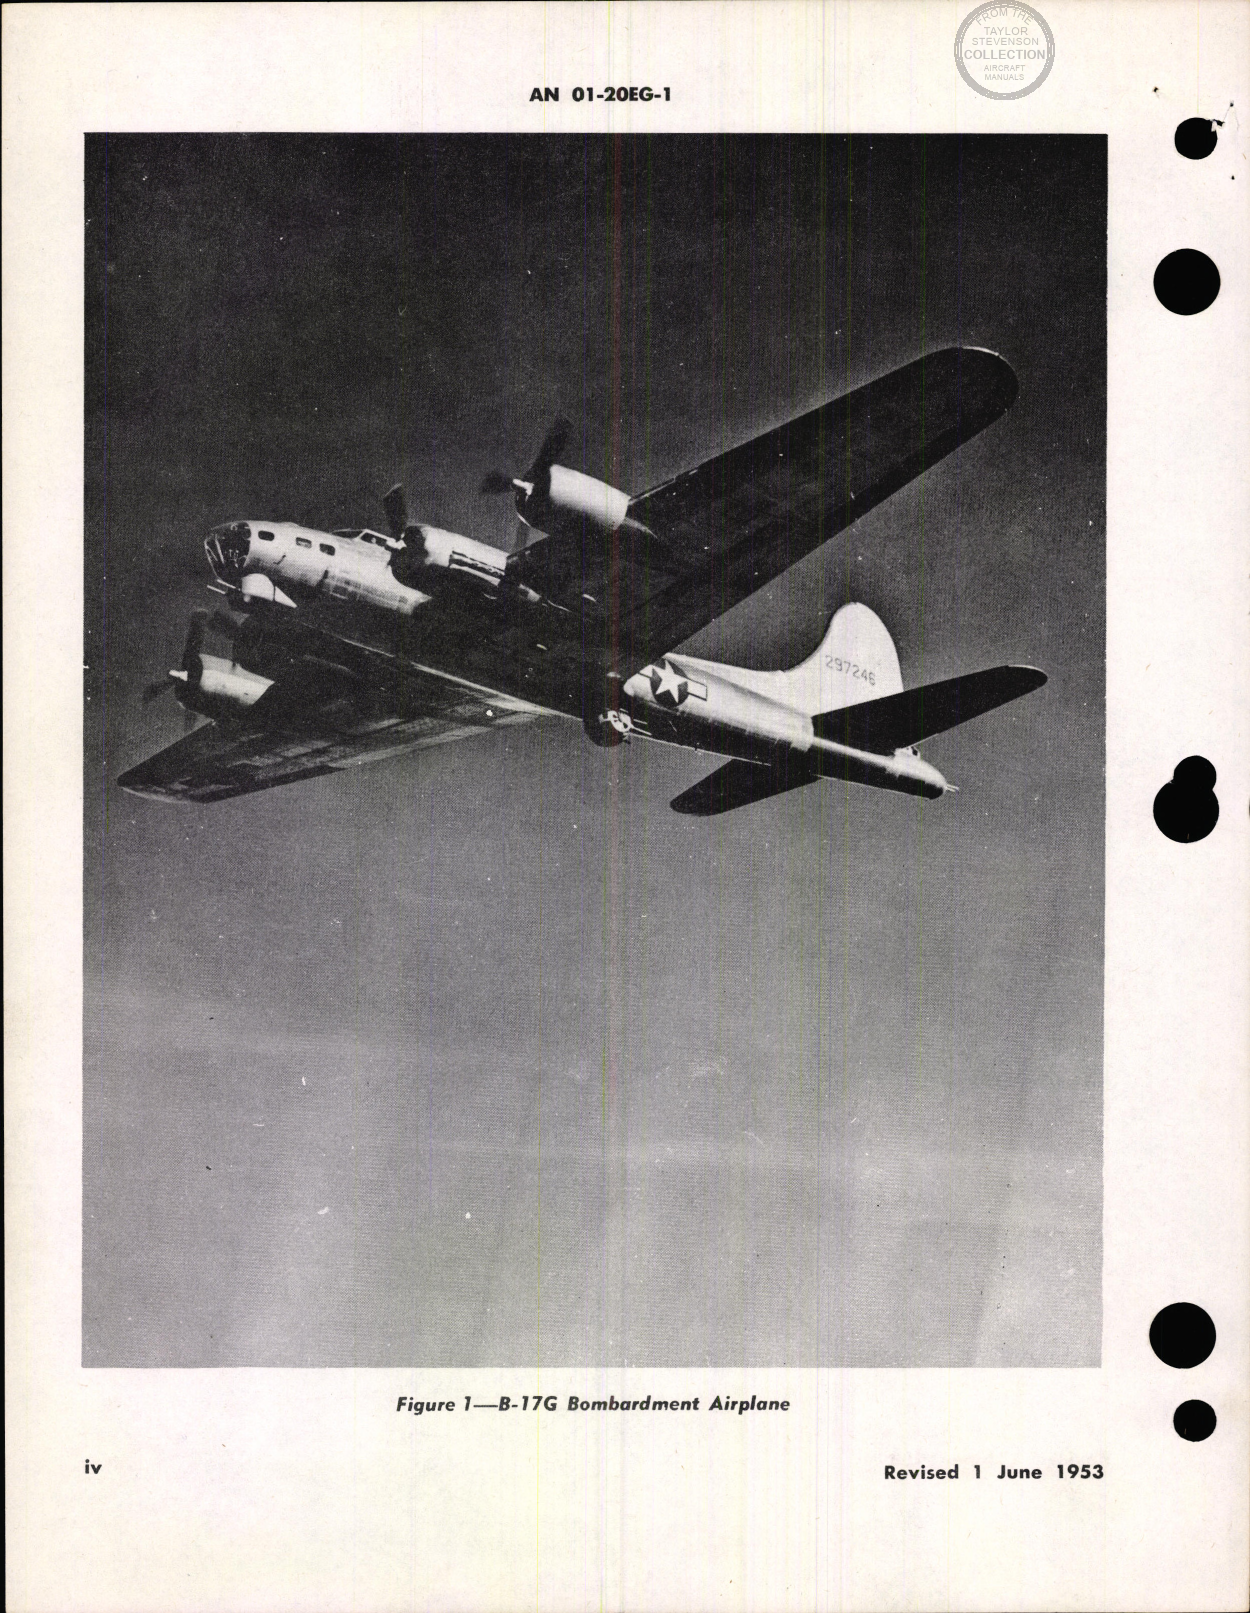 Sample page 6 from AirCorps Library document: Flight Handbook for B-17G, PB-1E Aircraft